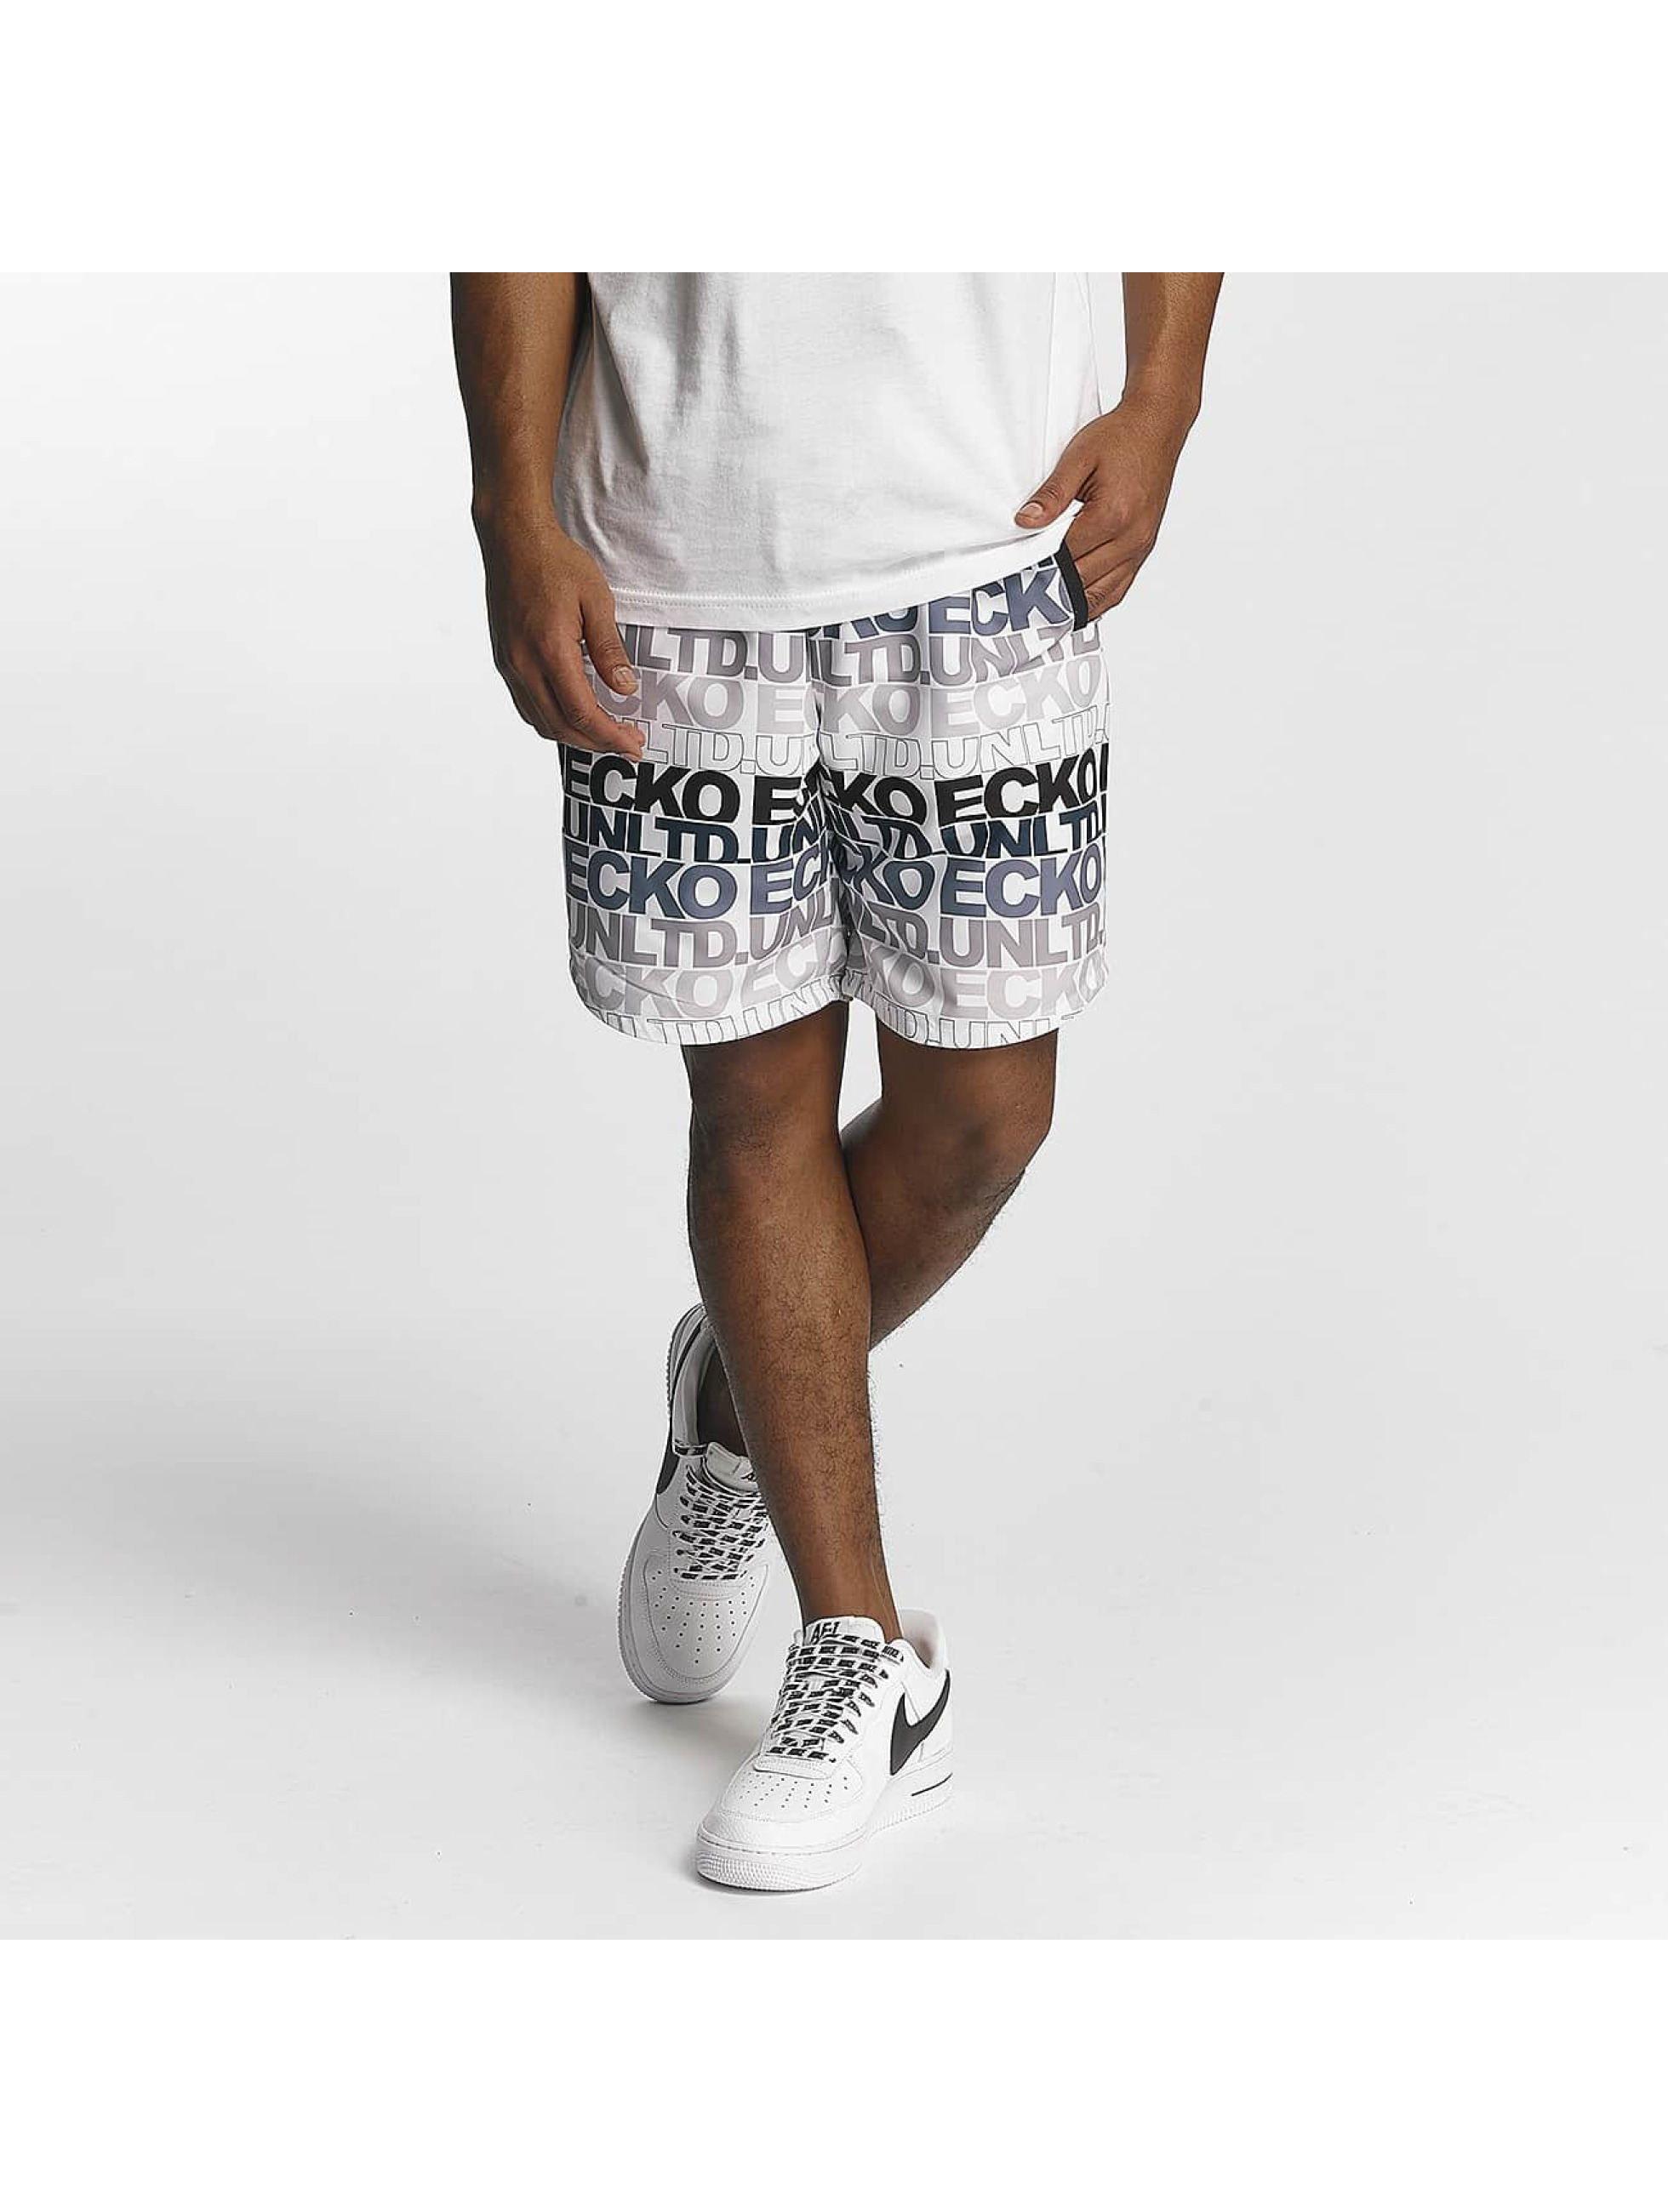 Ecko Unltd. / Short TroudÀrgent in grey S